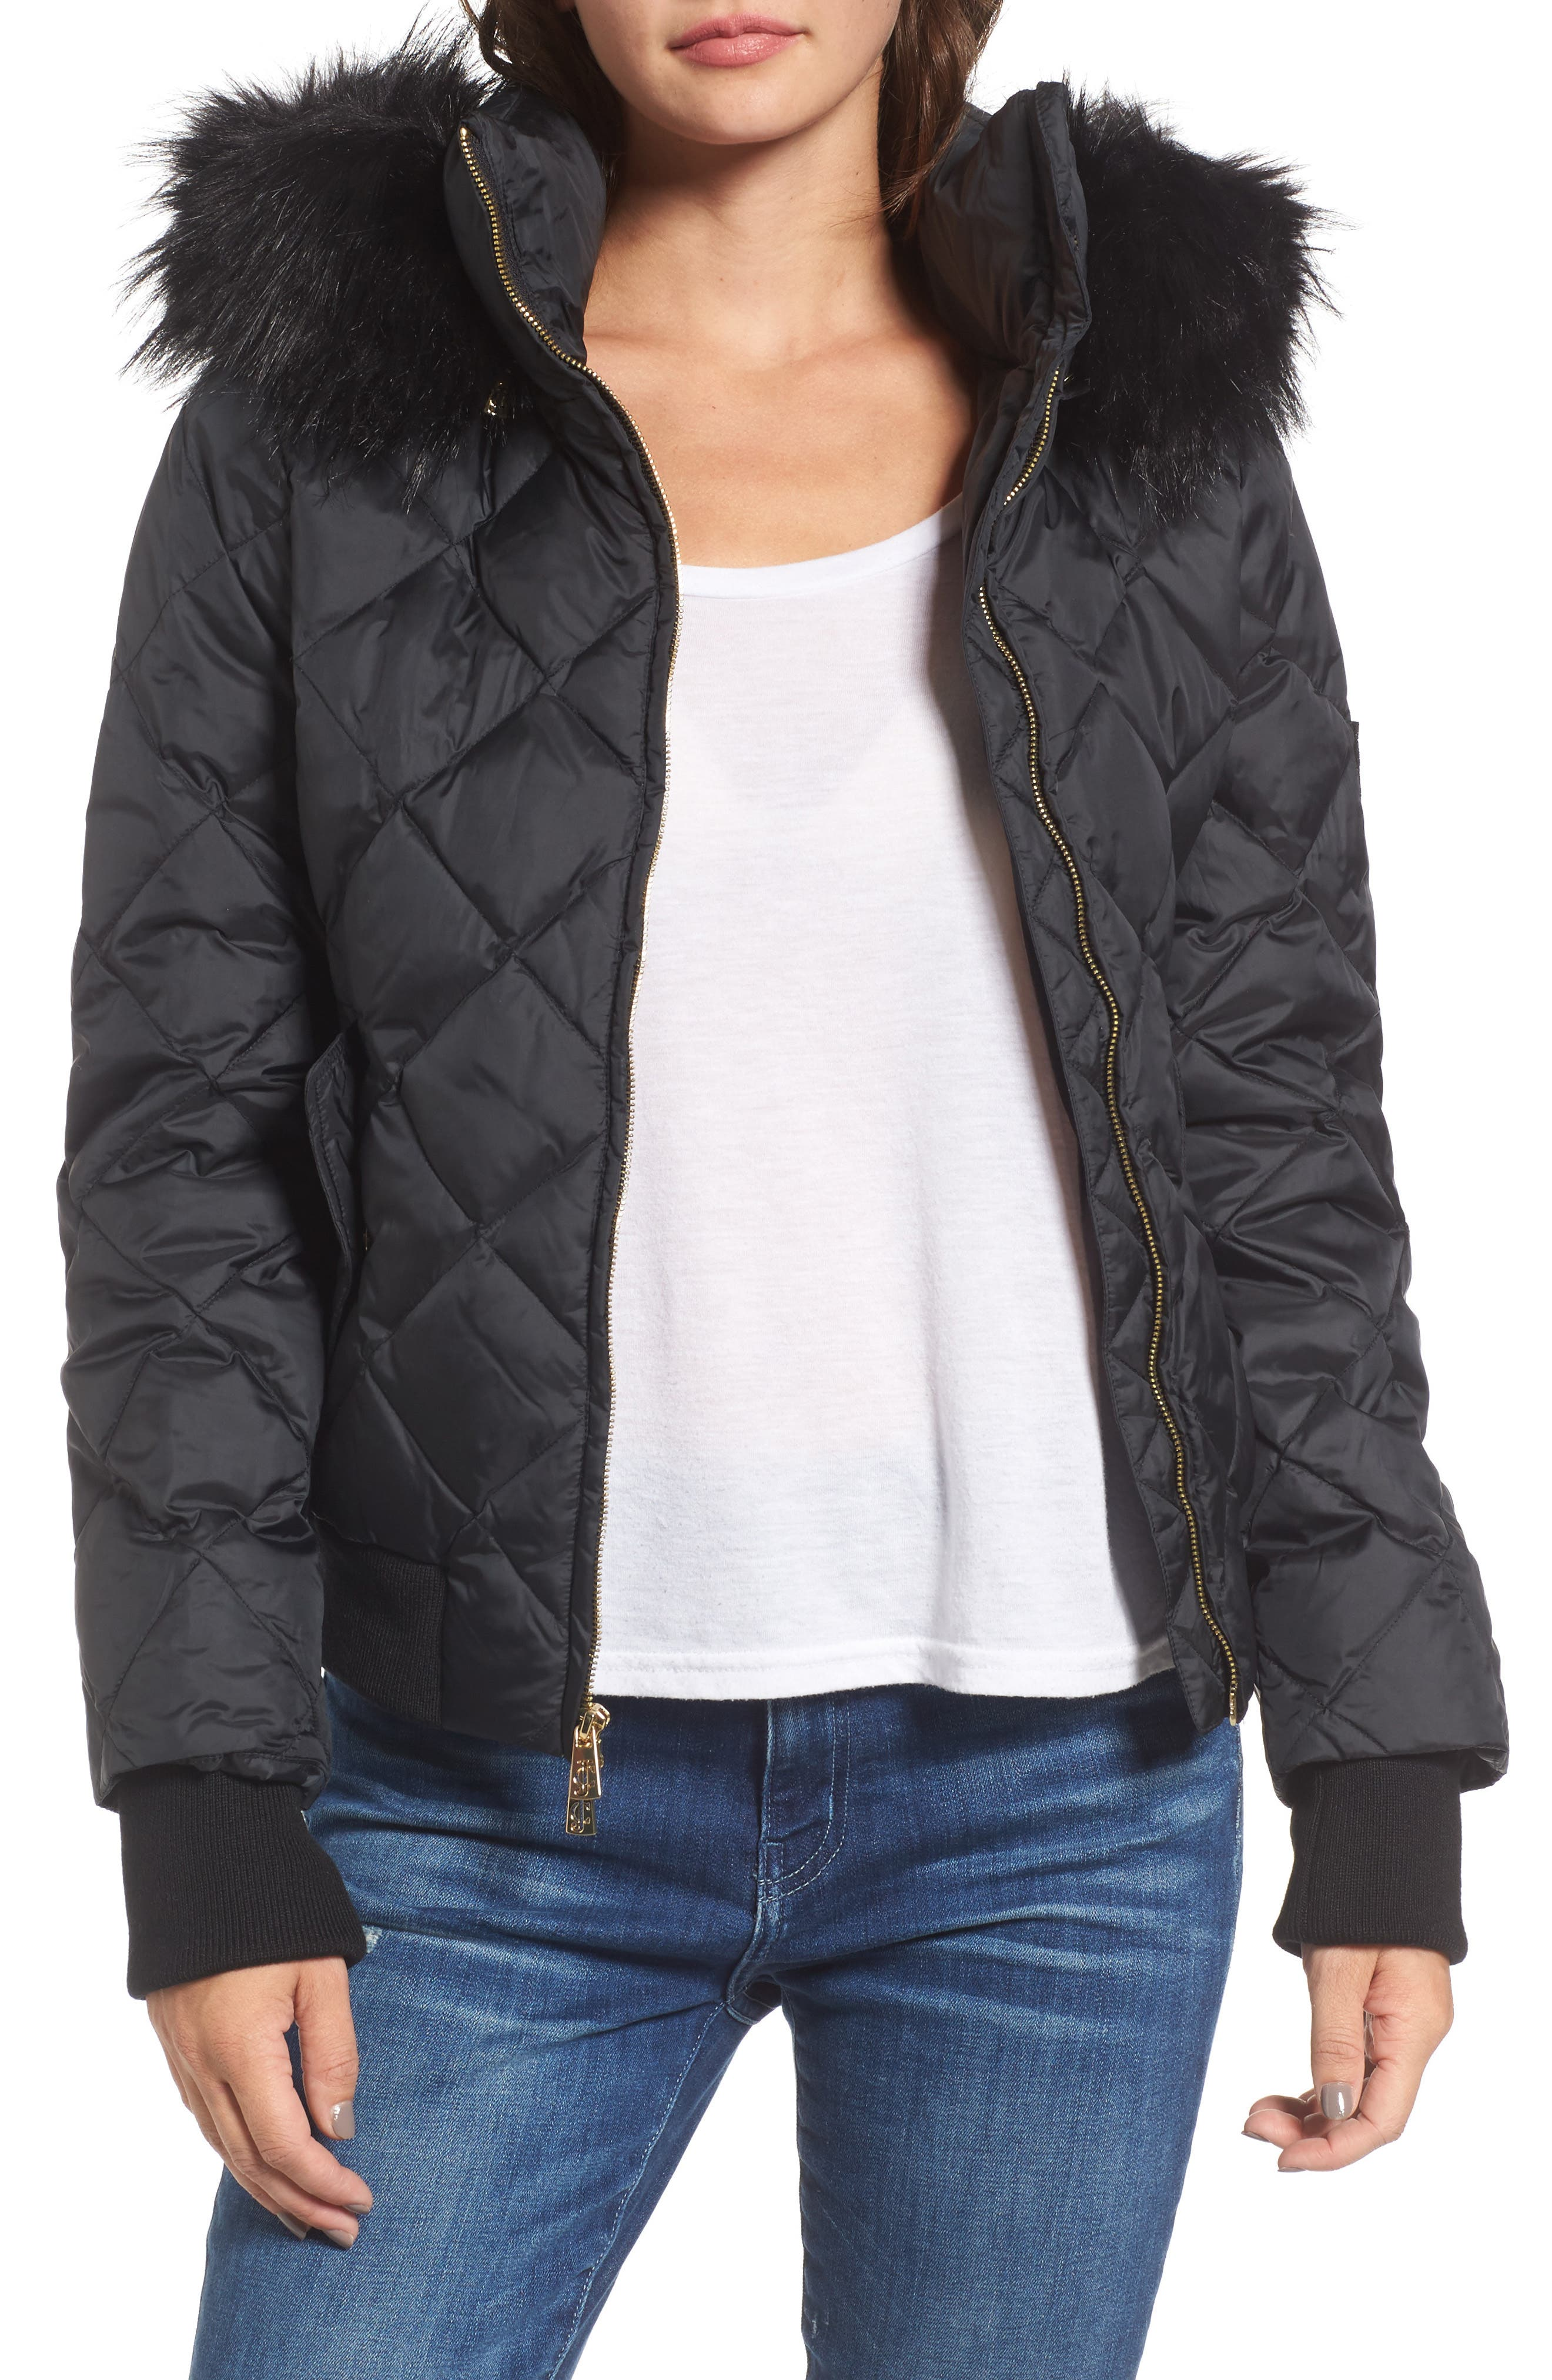 Main Image - Juicy Couture Hooded Puffer Jacket with Faux Fur Trim